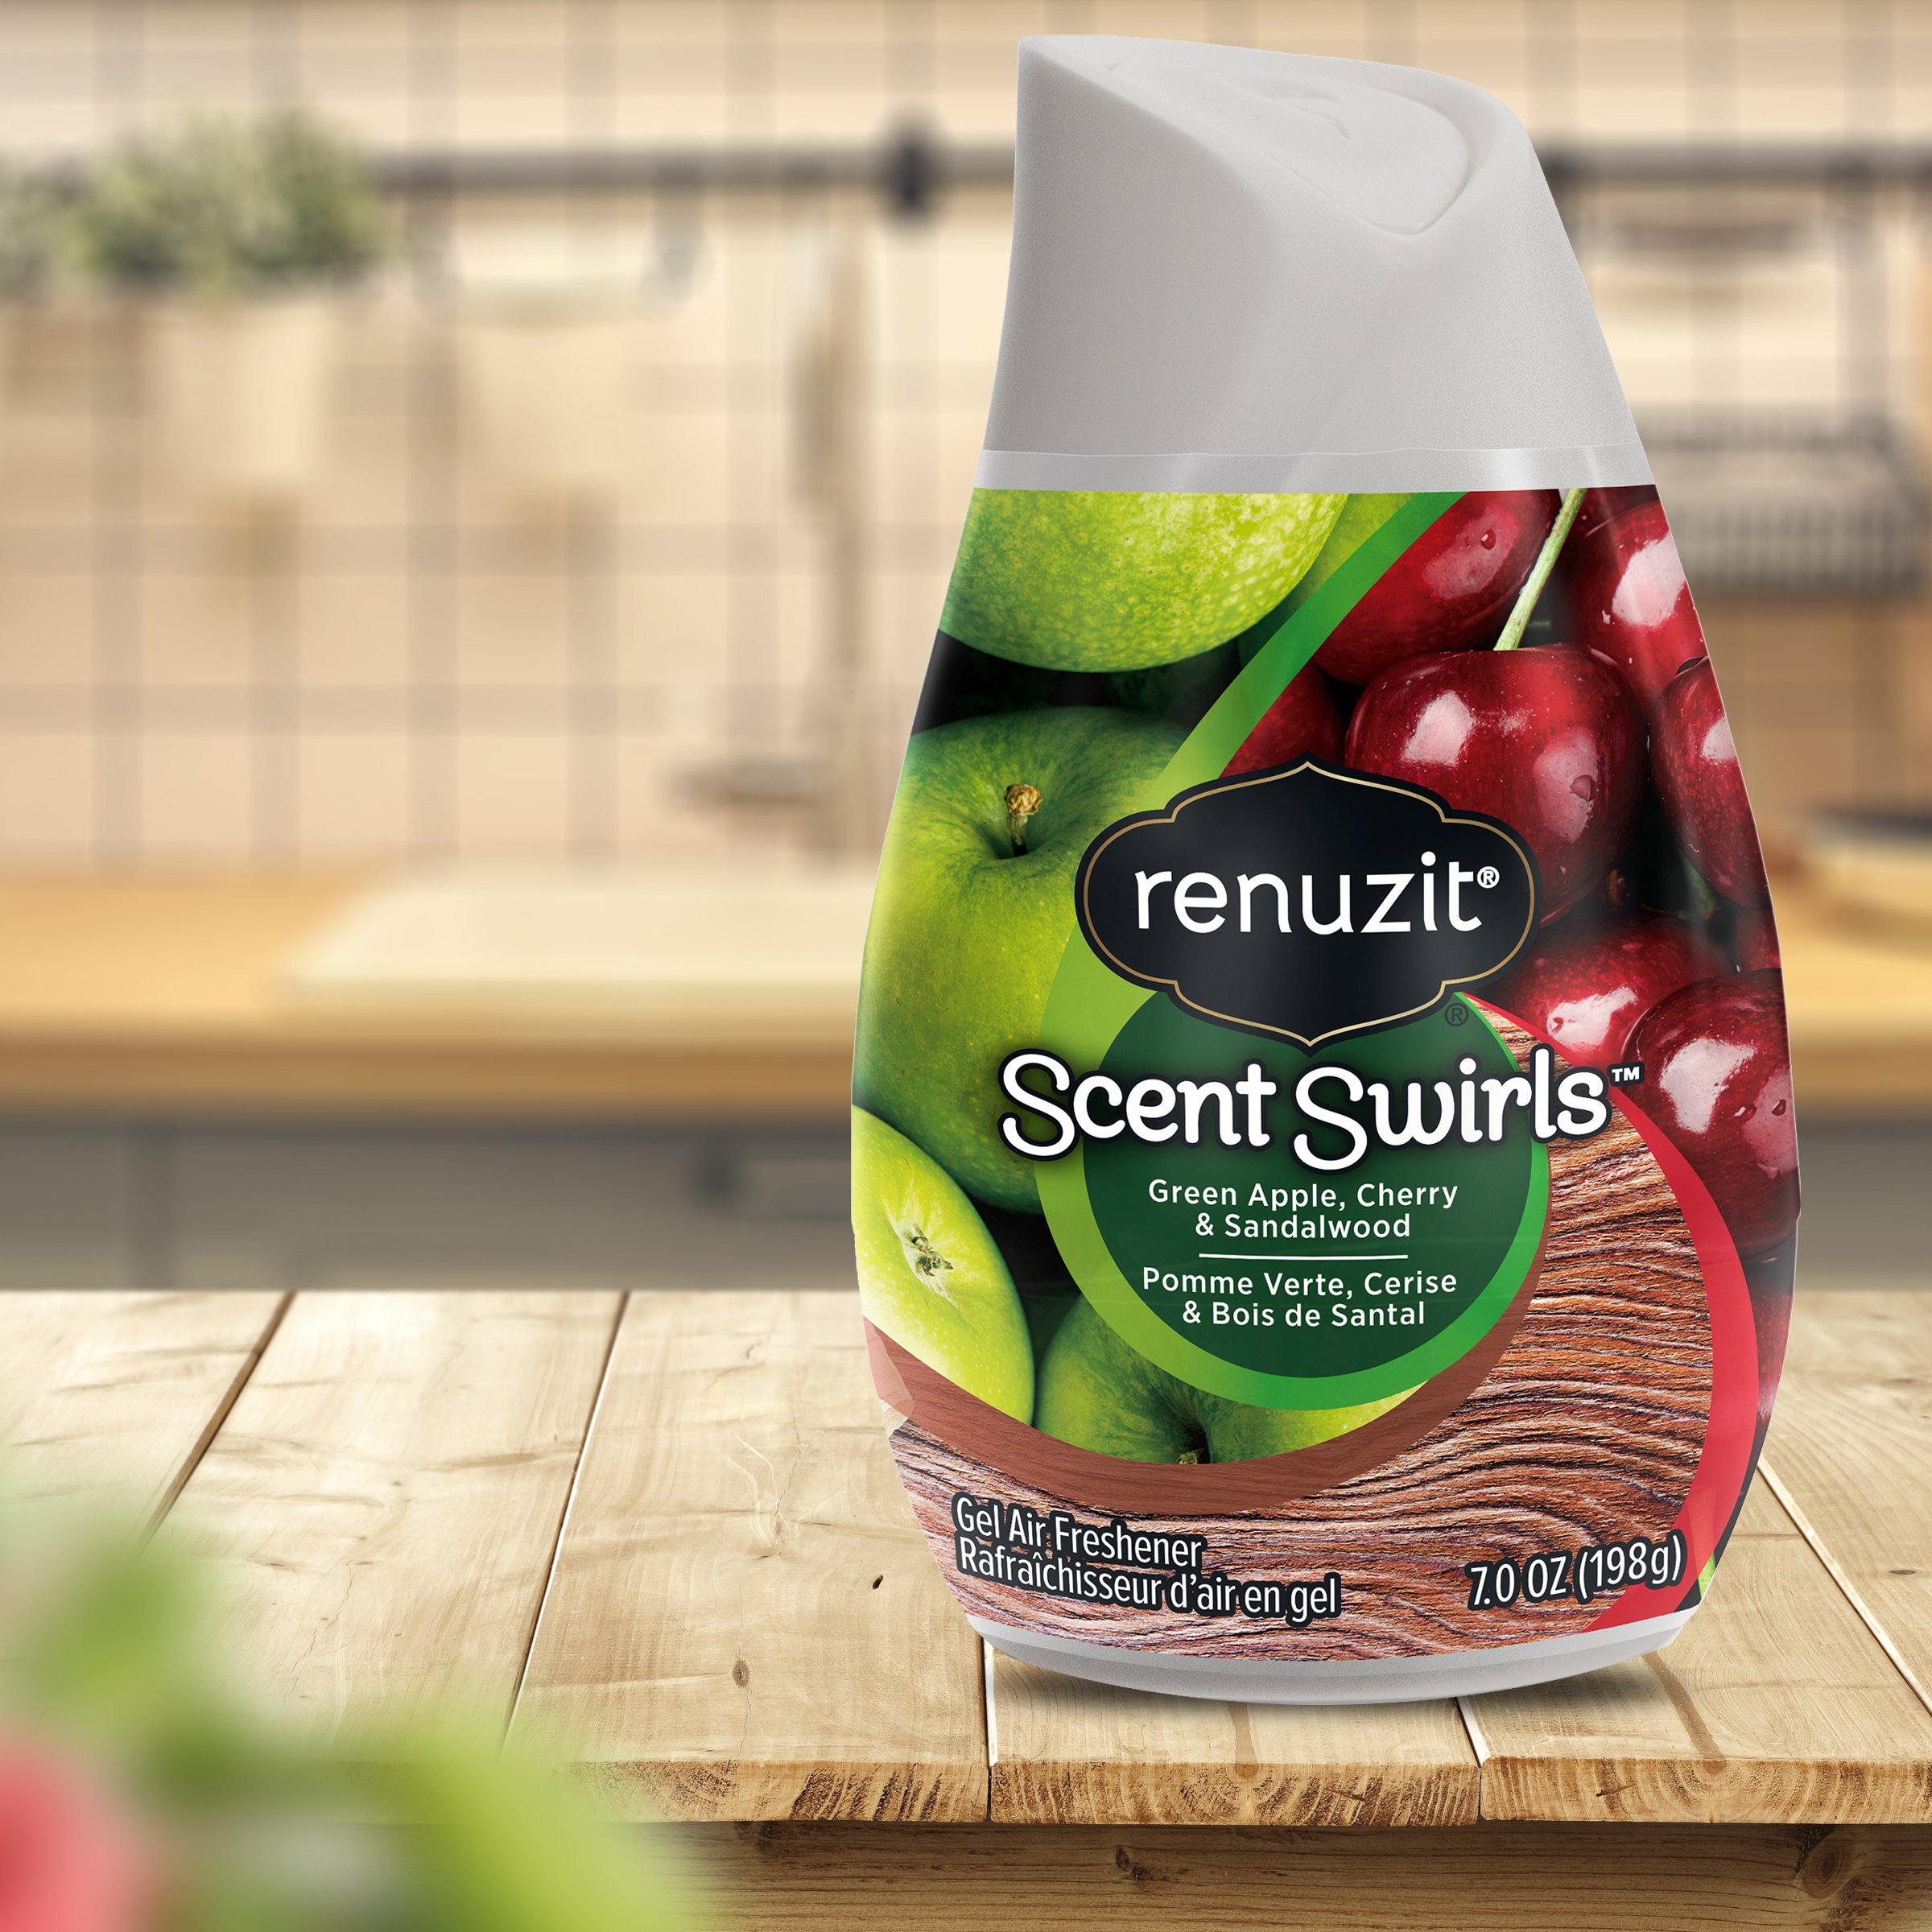 Renuzit Scent Swirls Air Freshener Gel, Green Apple, Cherry &